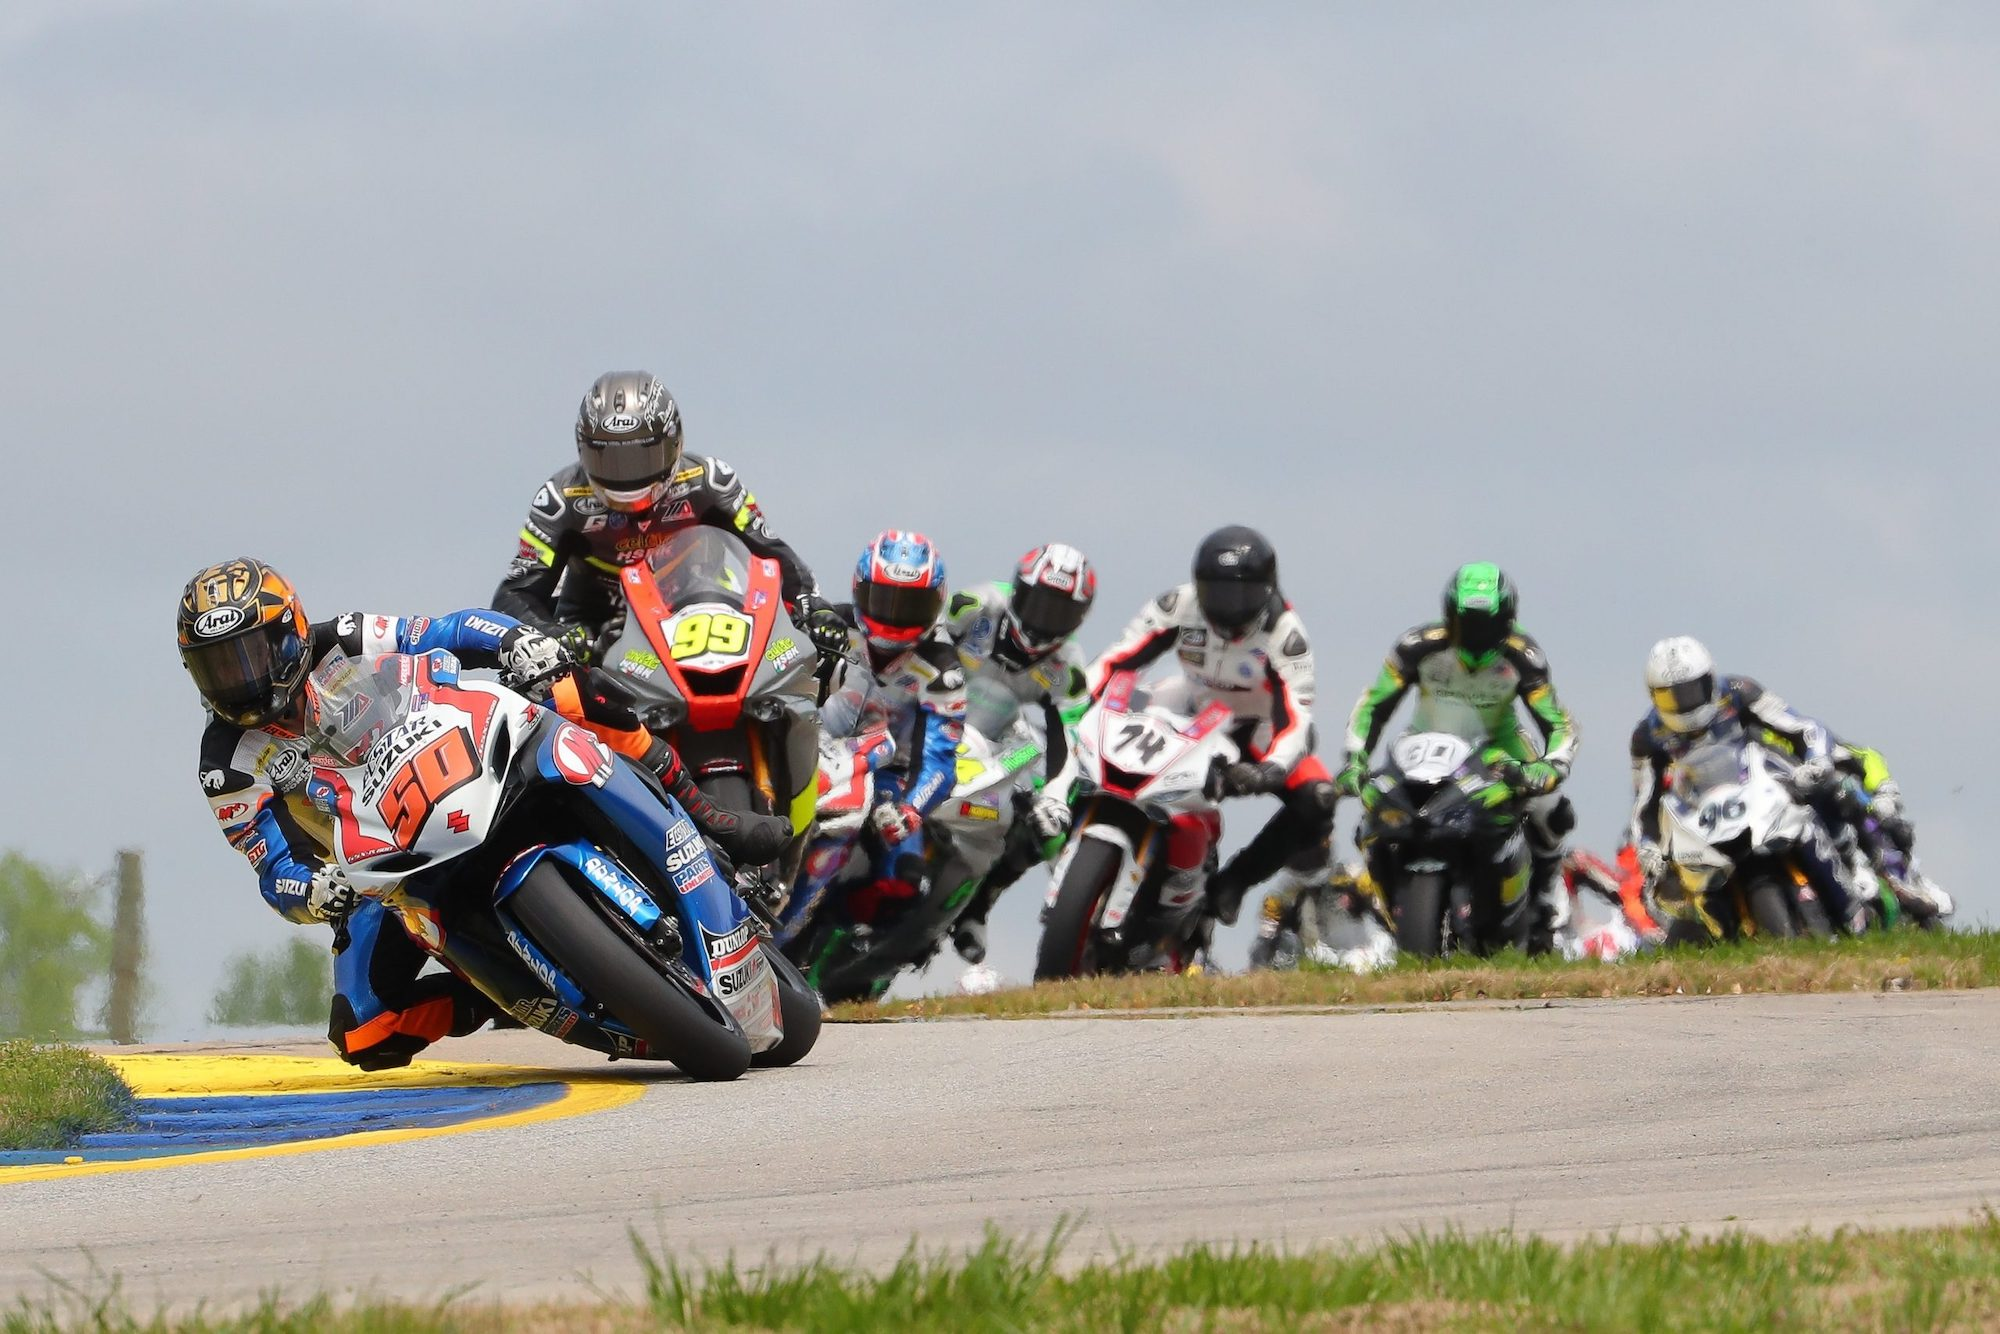 A view of MotoAmerica Superbikes class racing at Road America 2021